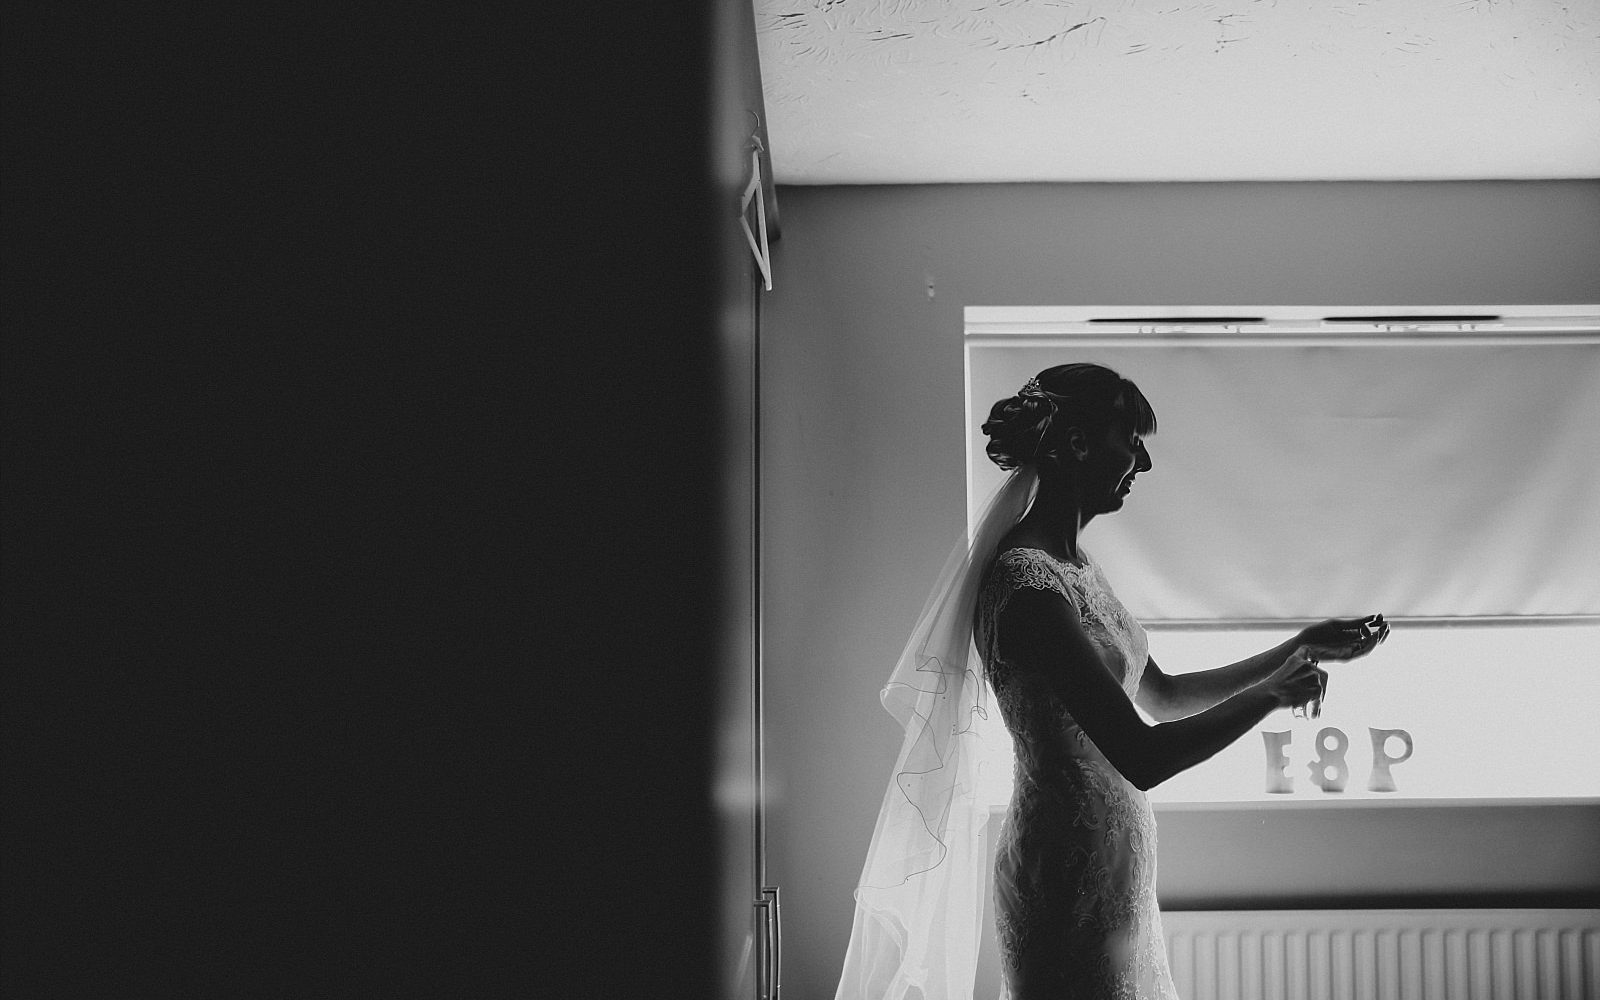 Kilhey-Court-Wigan-Manchester-Wedding-Photography-Photographer-Venue-embee-Alternative-Weddings0046